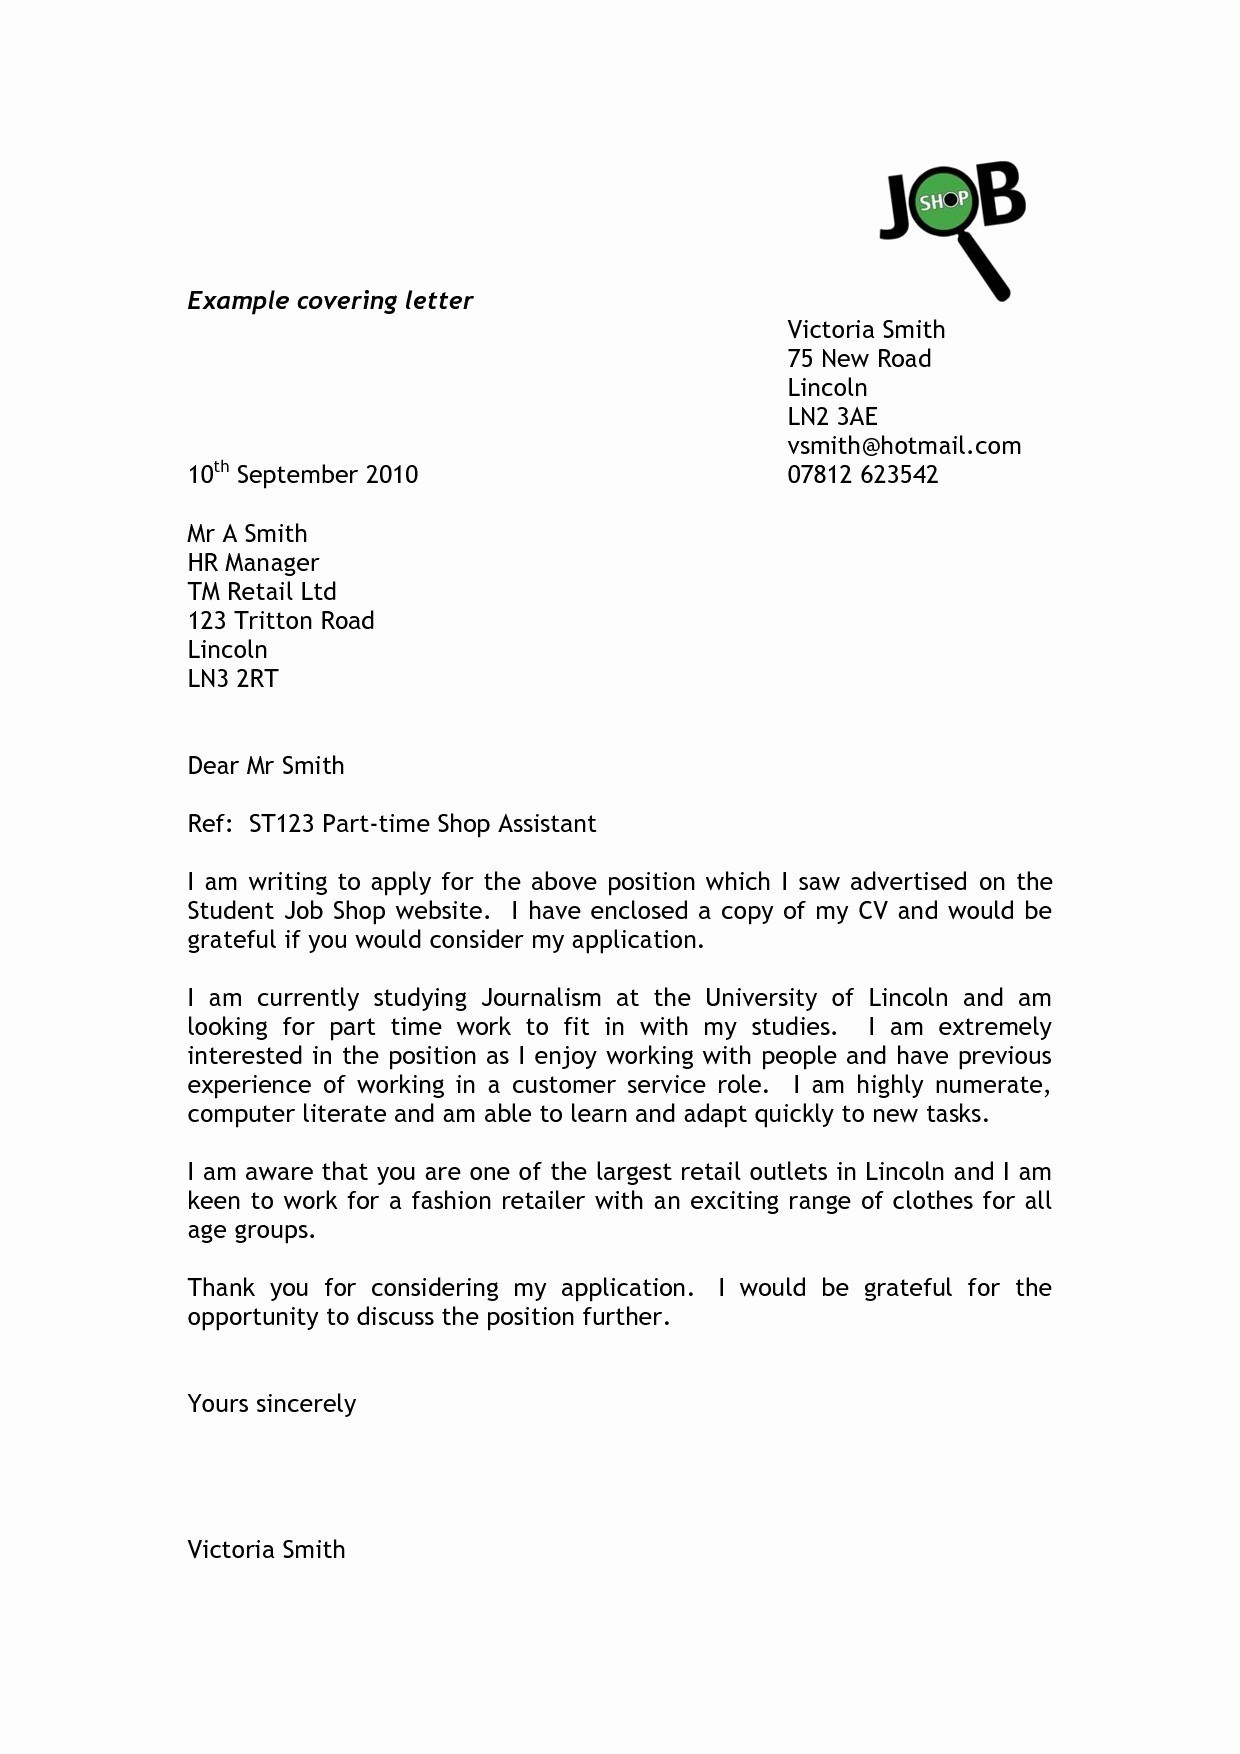 Letter Of Interest for Employment Template - format Covering Letter for Cv